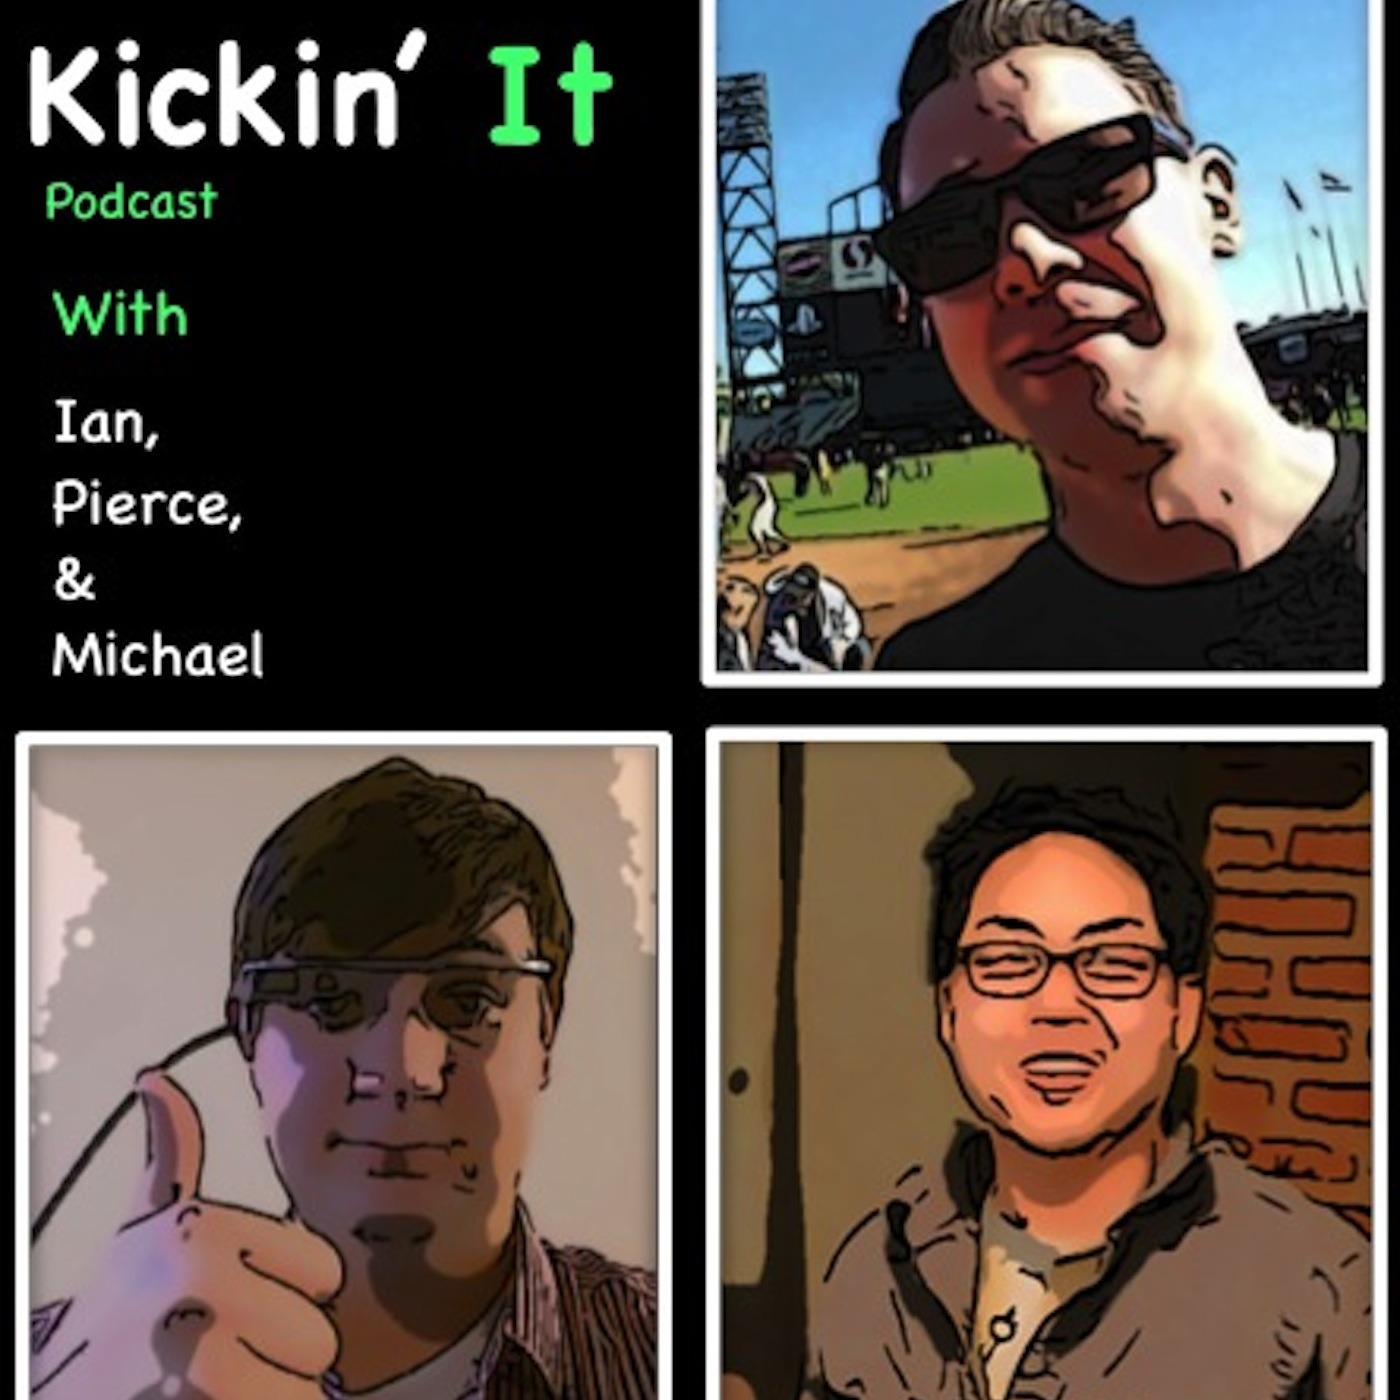 Kickin' It Podcast